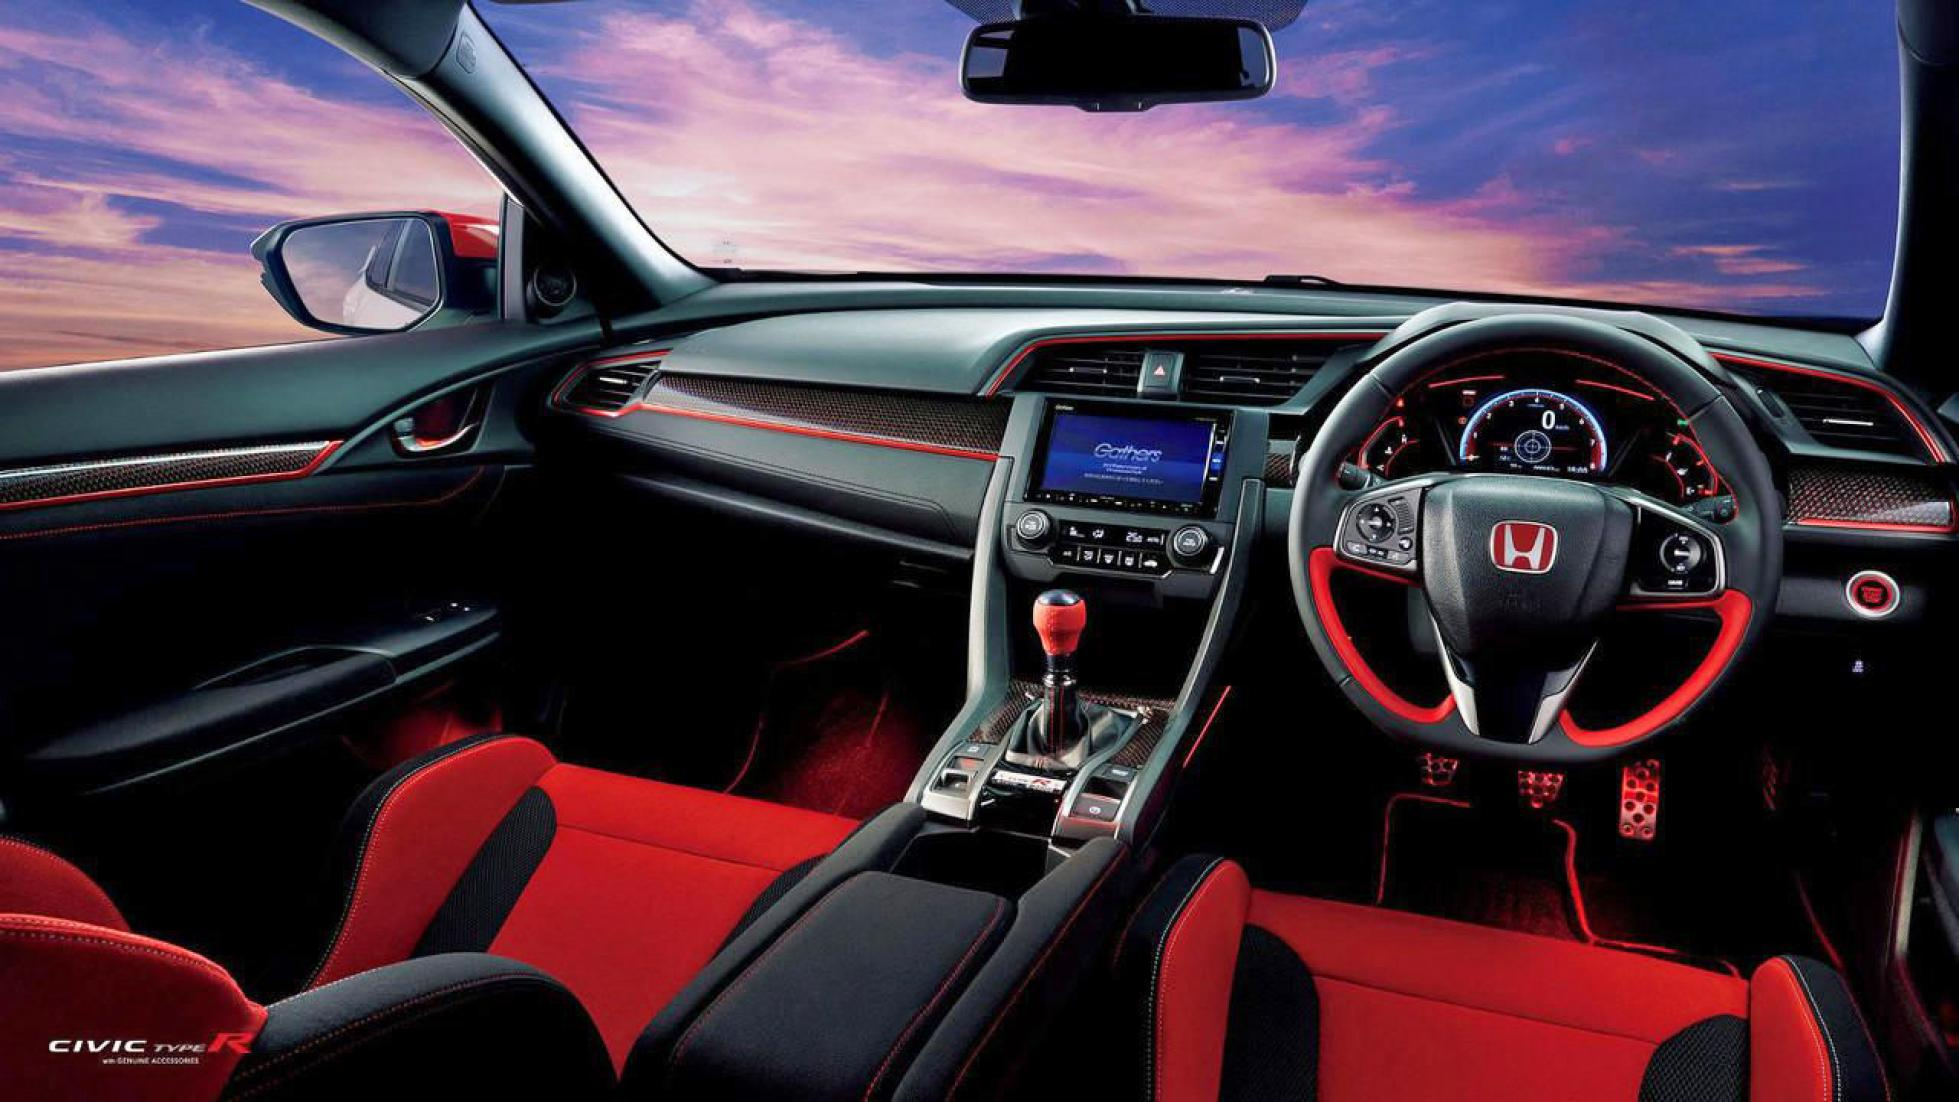 Topgear Honda S Modified Its Own Civic Type R